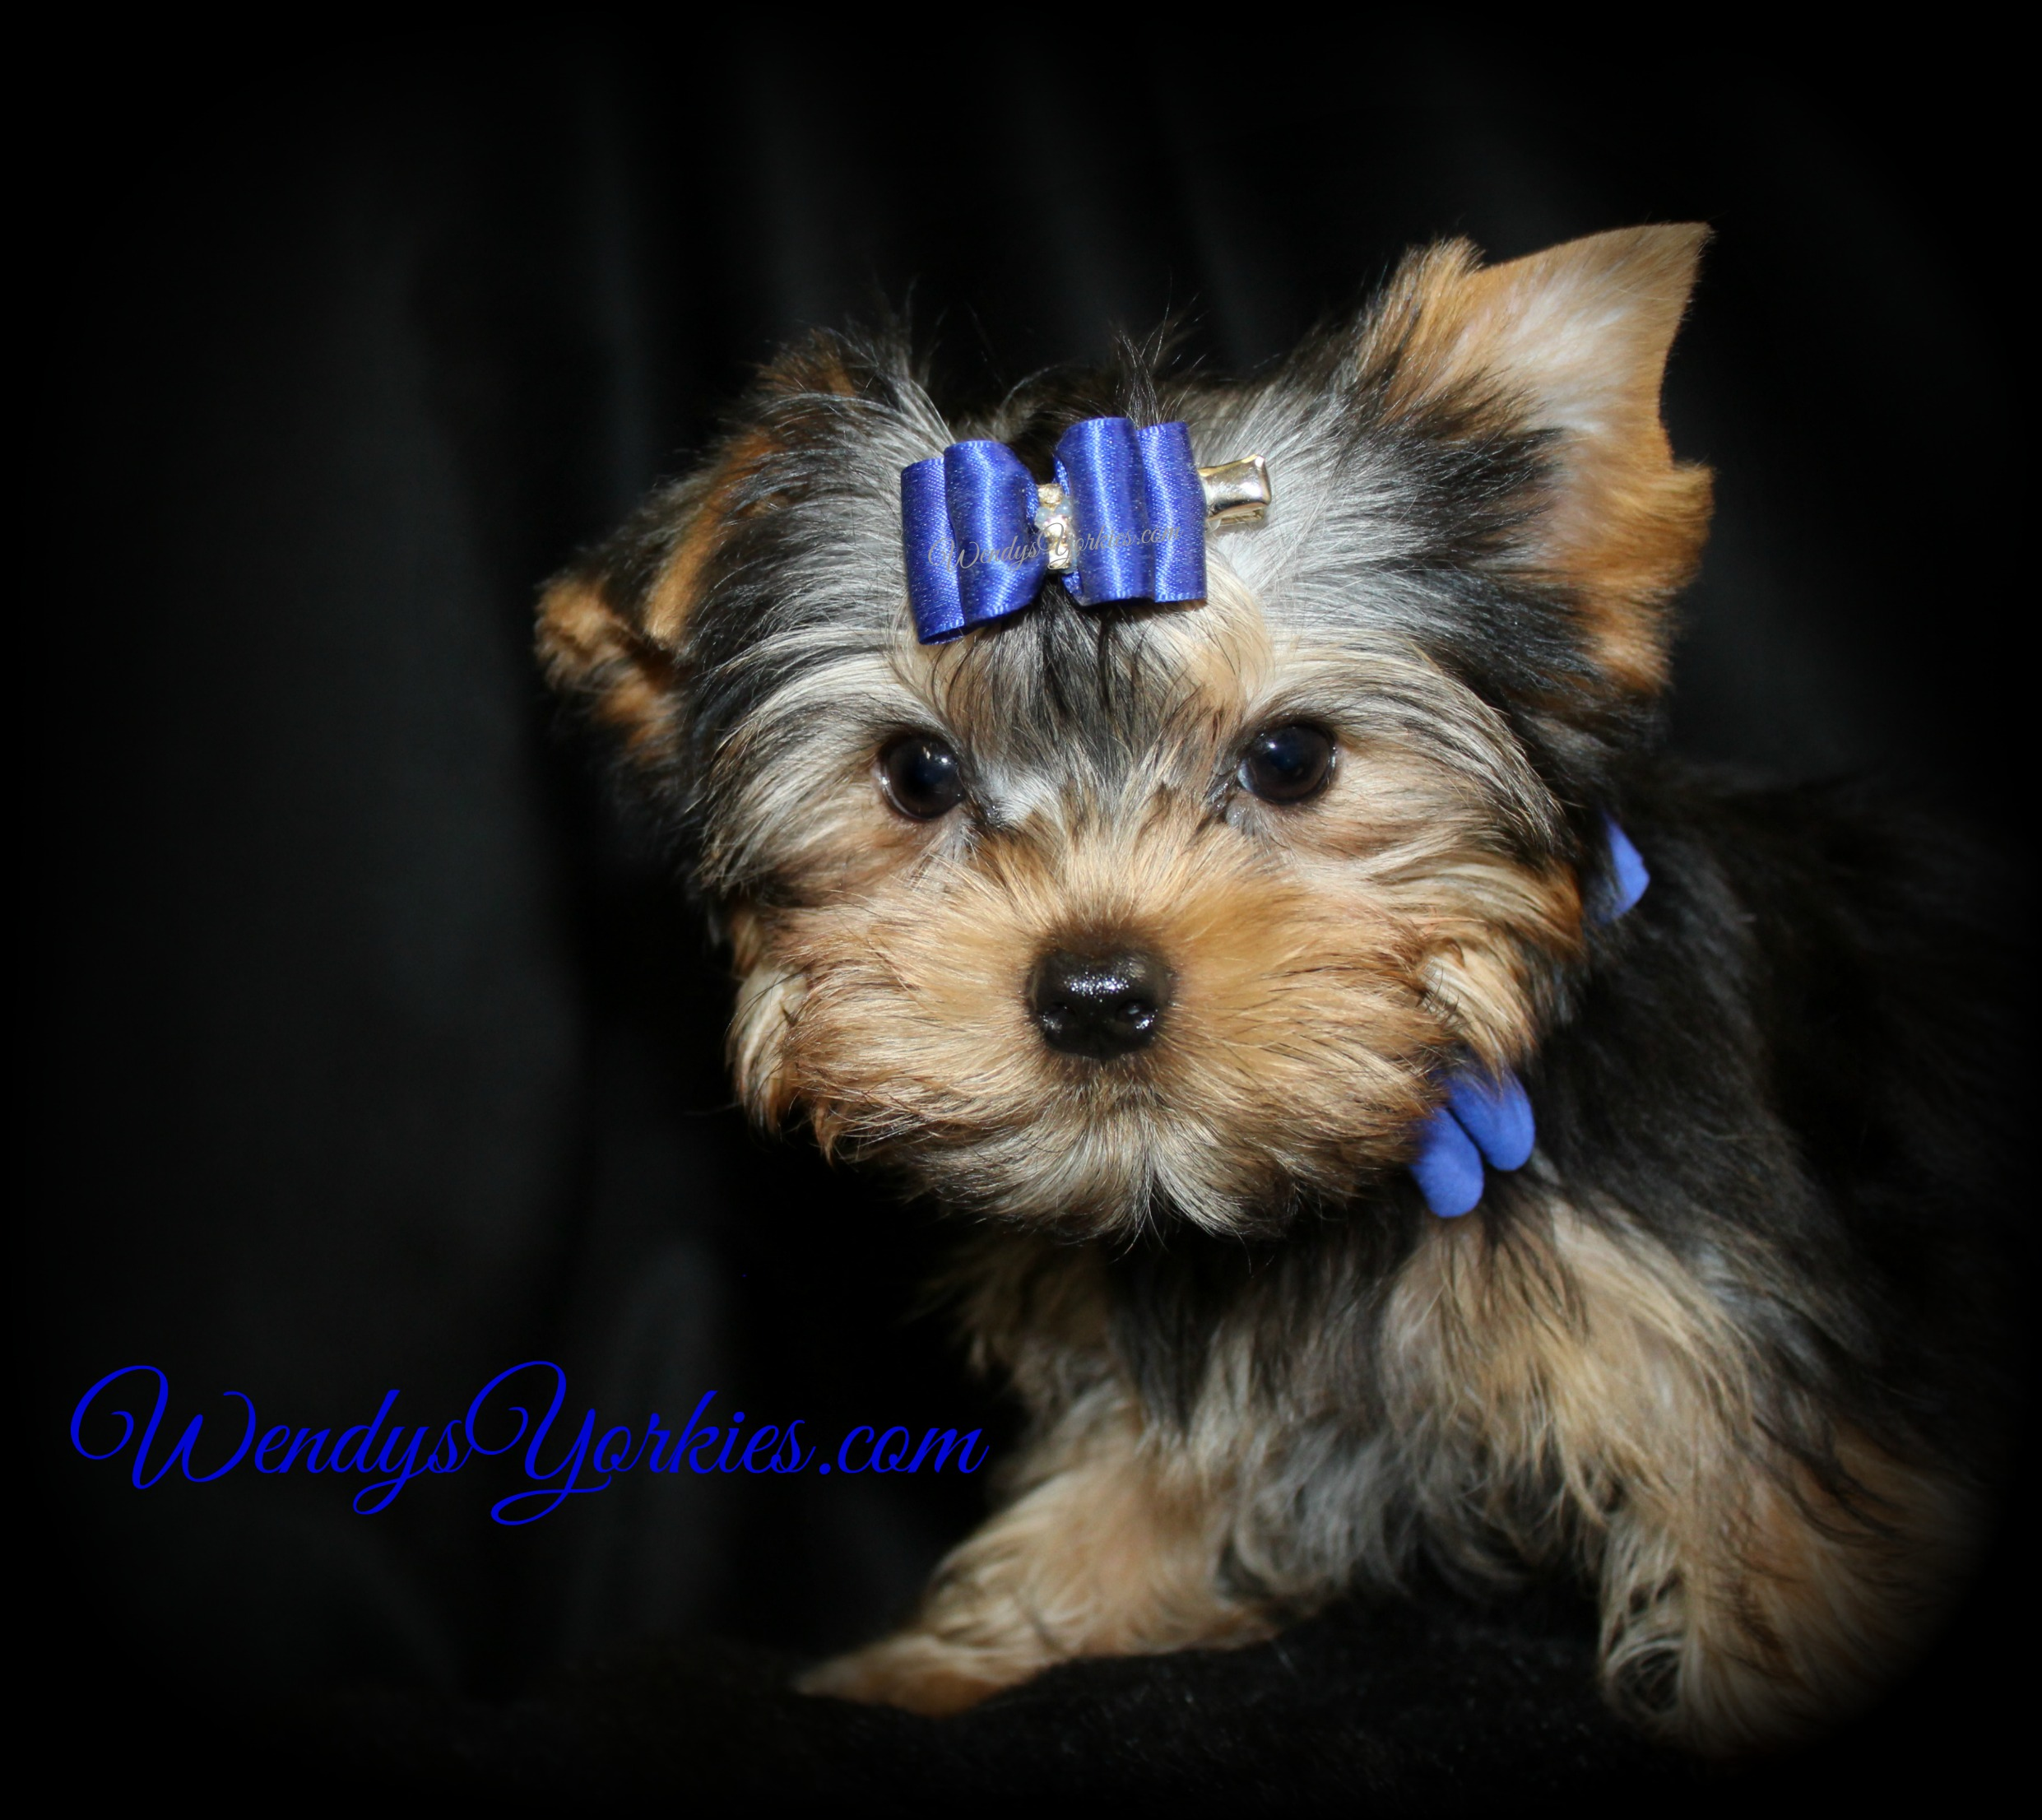 Teacup Male YOrkie puppy for sale in Texas, m1,WendysYorkies.com